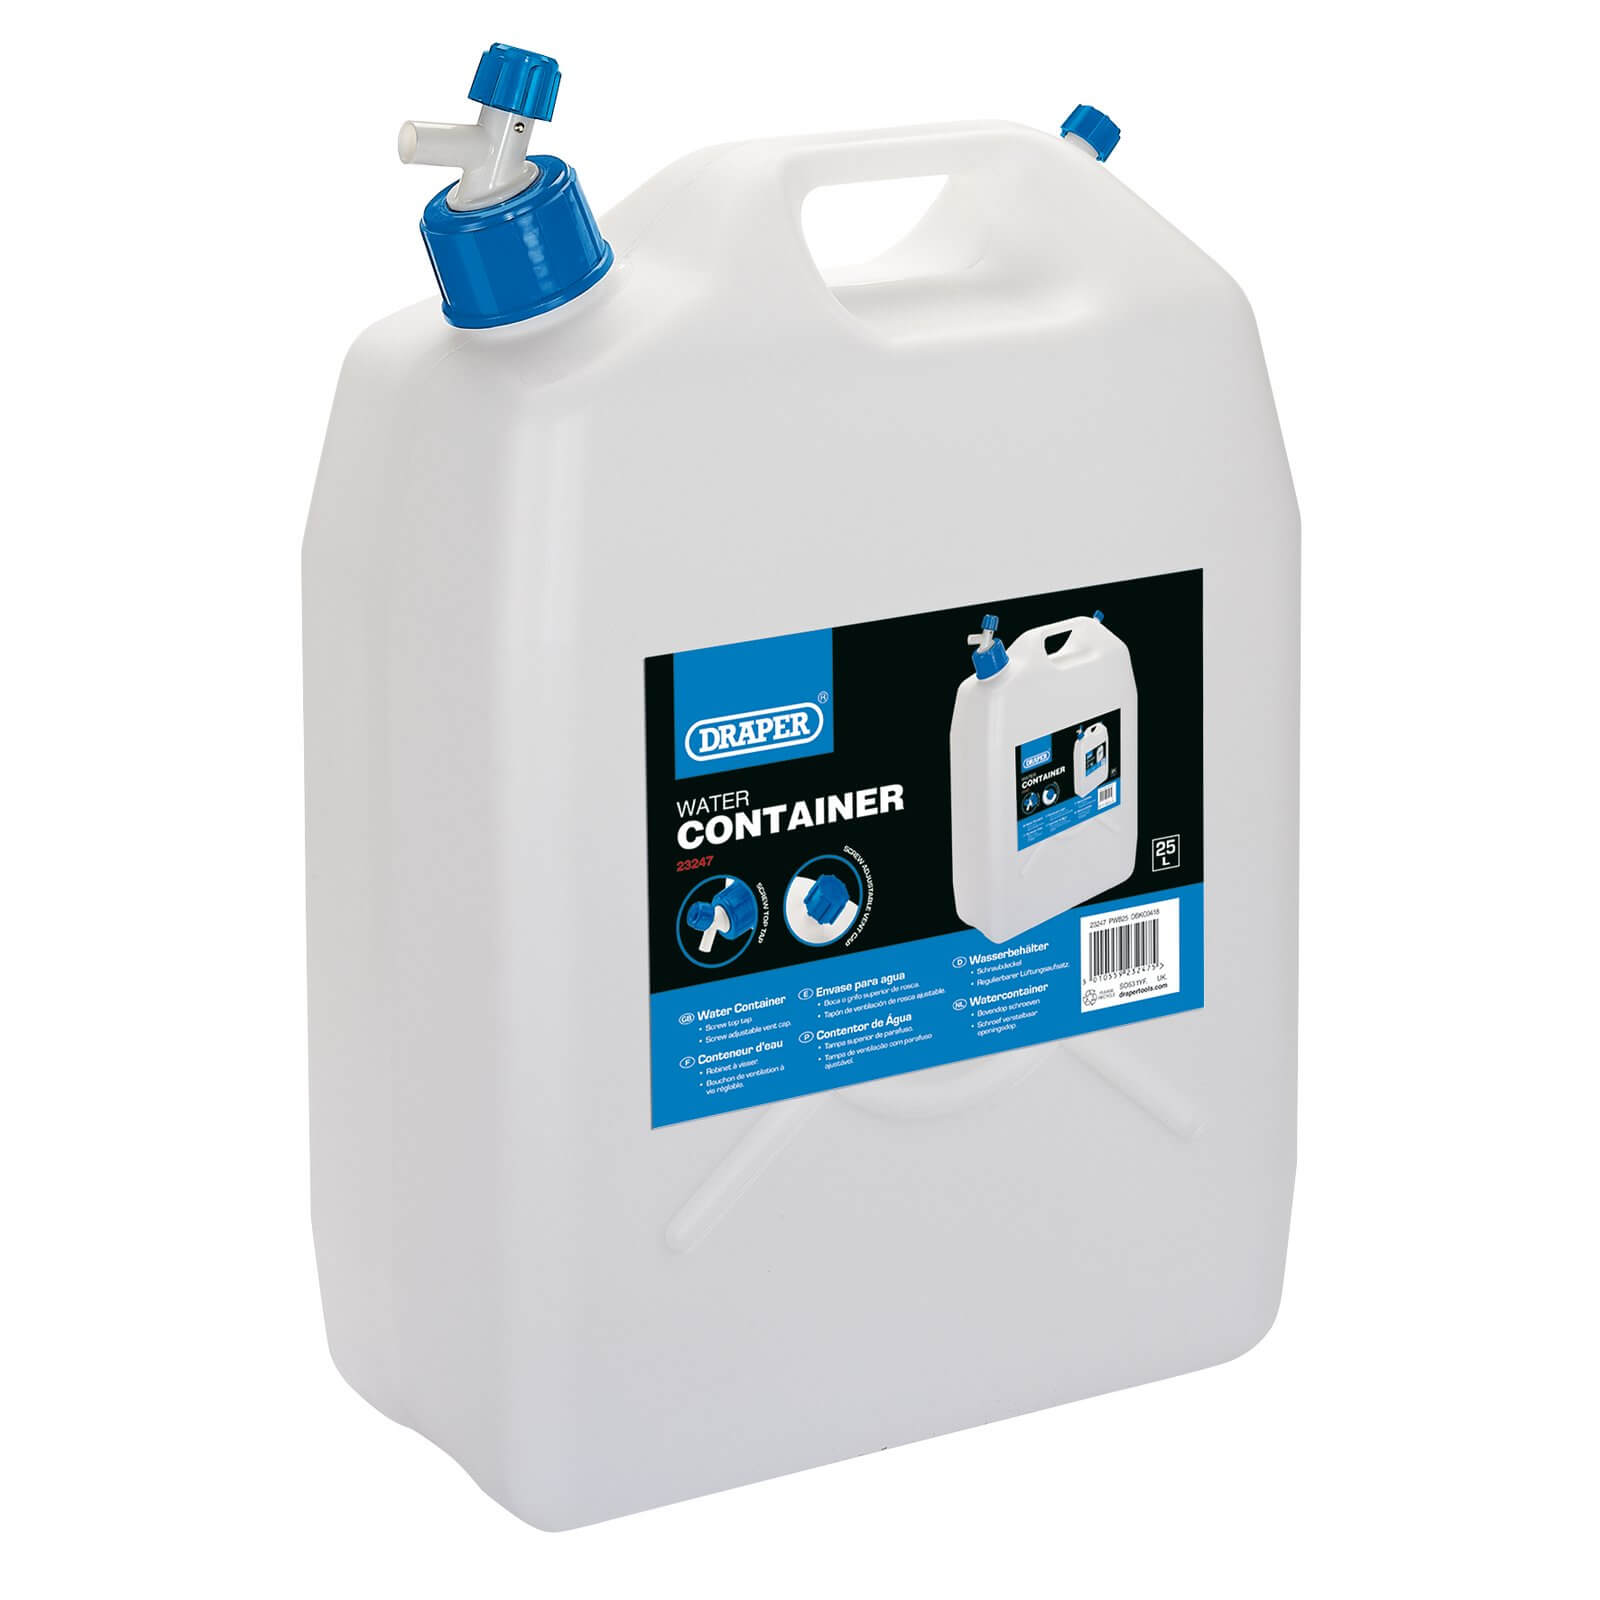 Image of Draper Water Container 25l